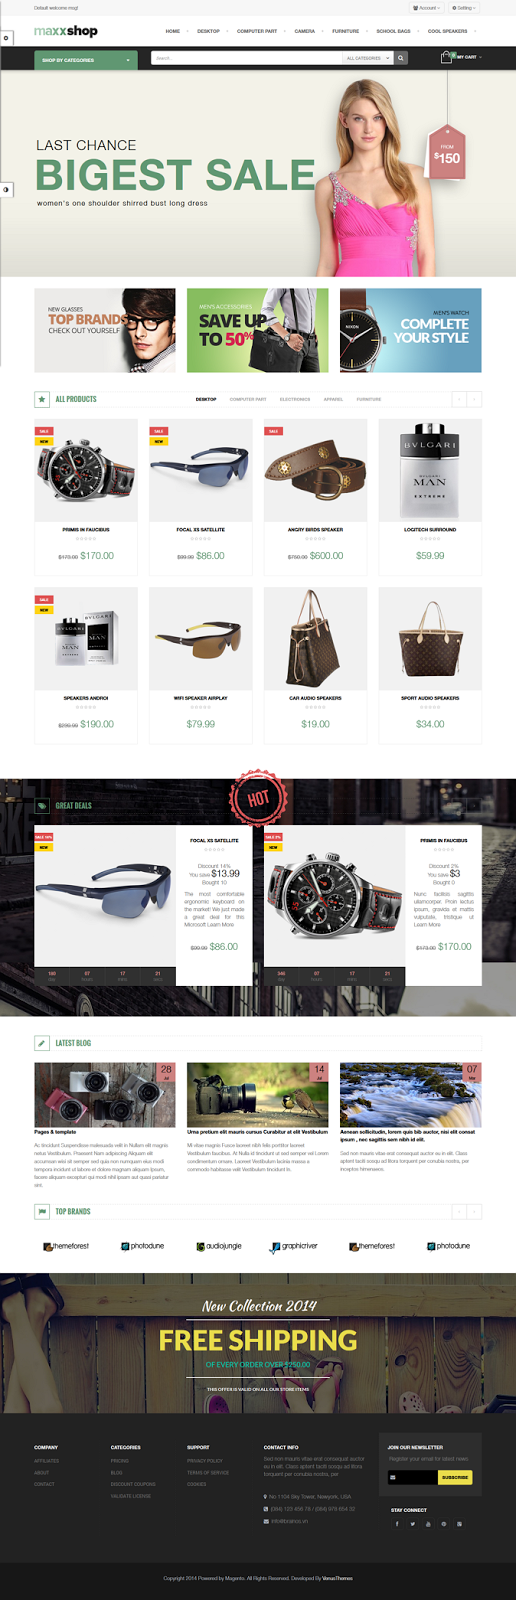 download magento theme